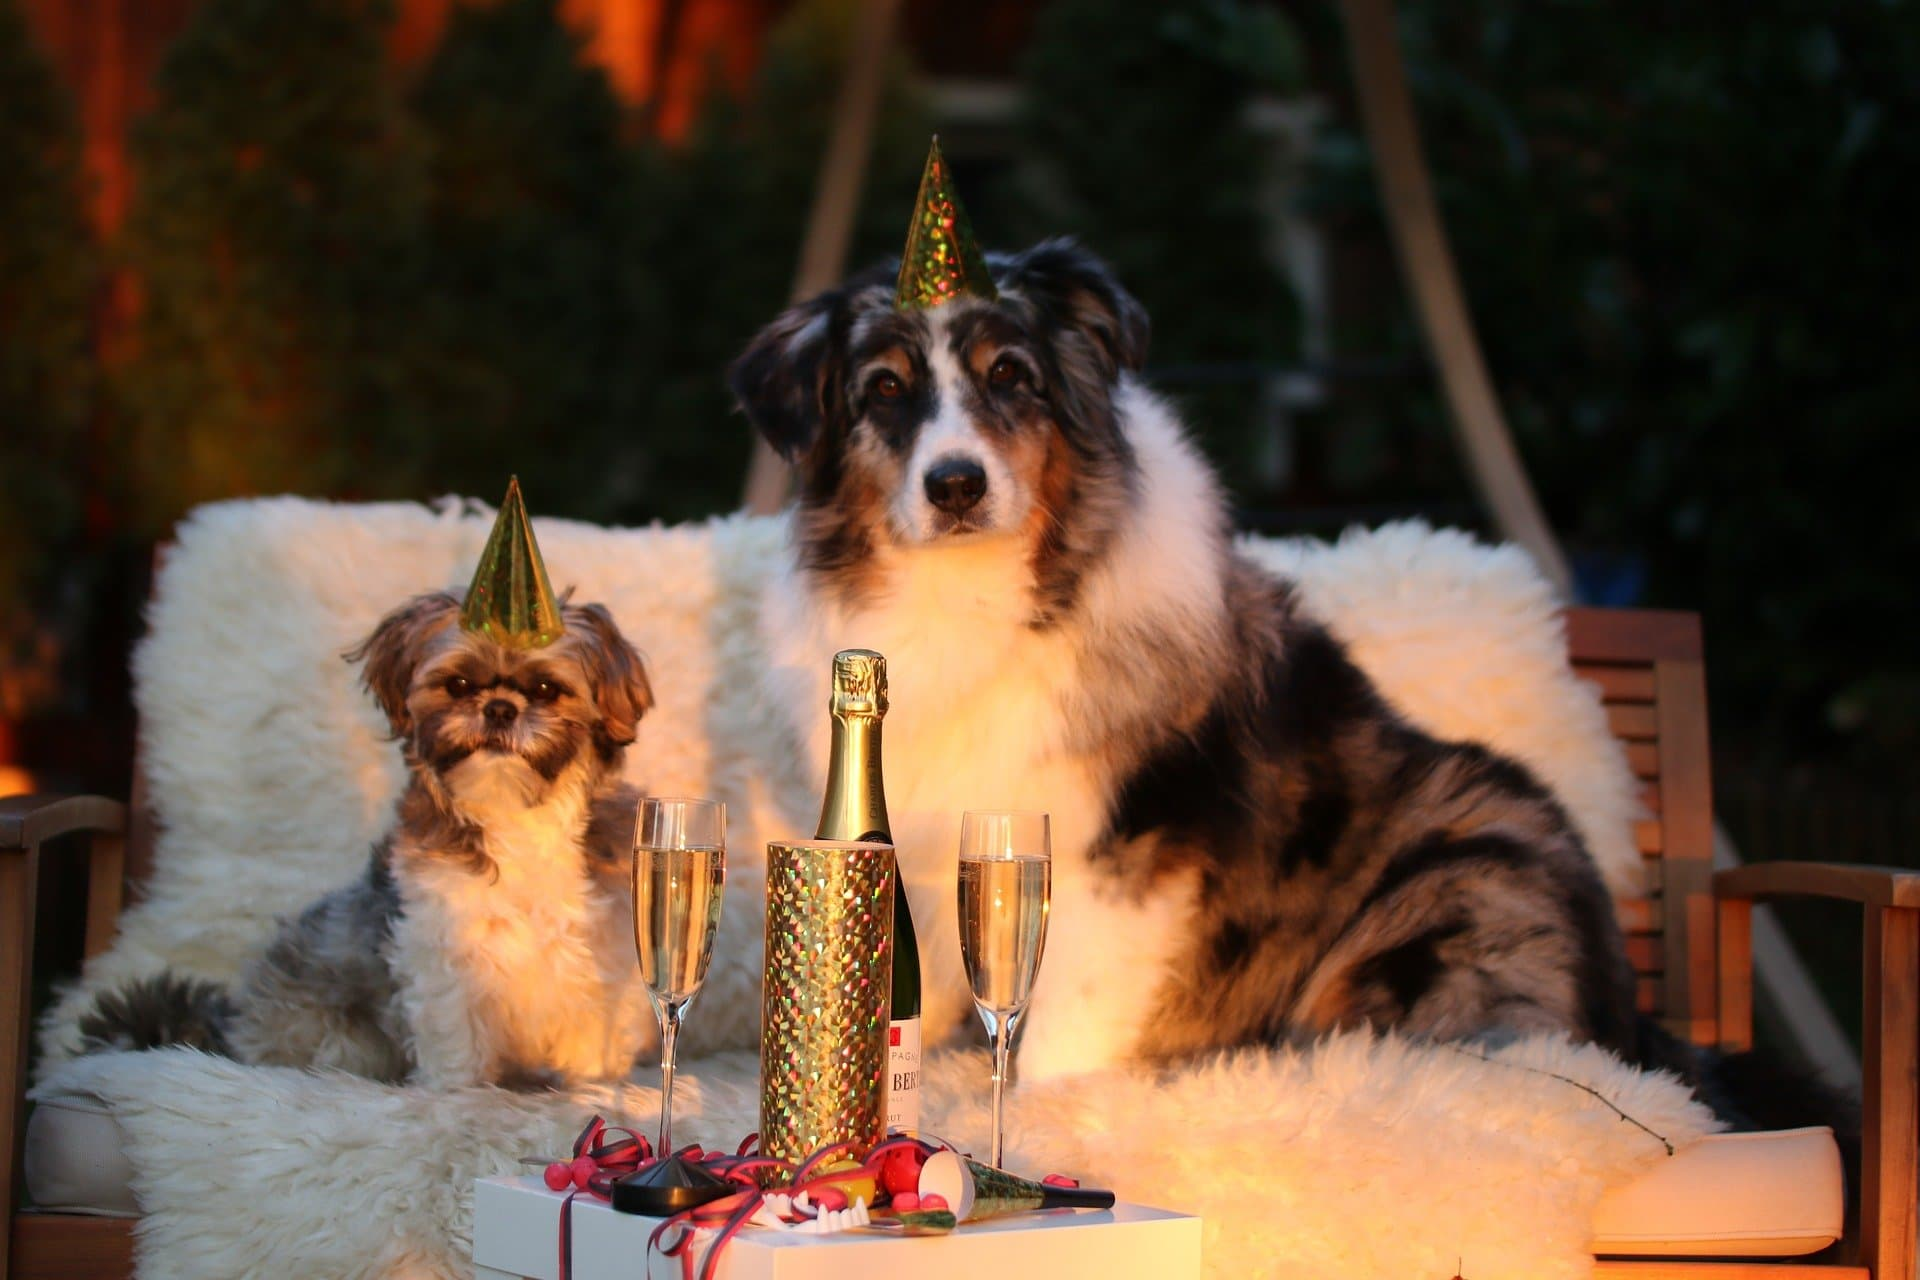 Two dogs wear party hats for New Year